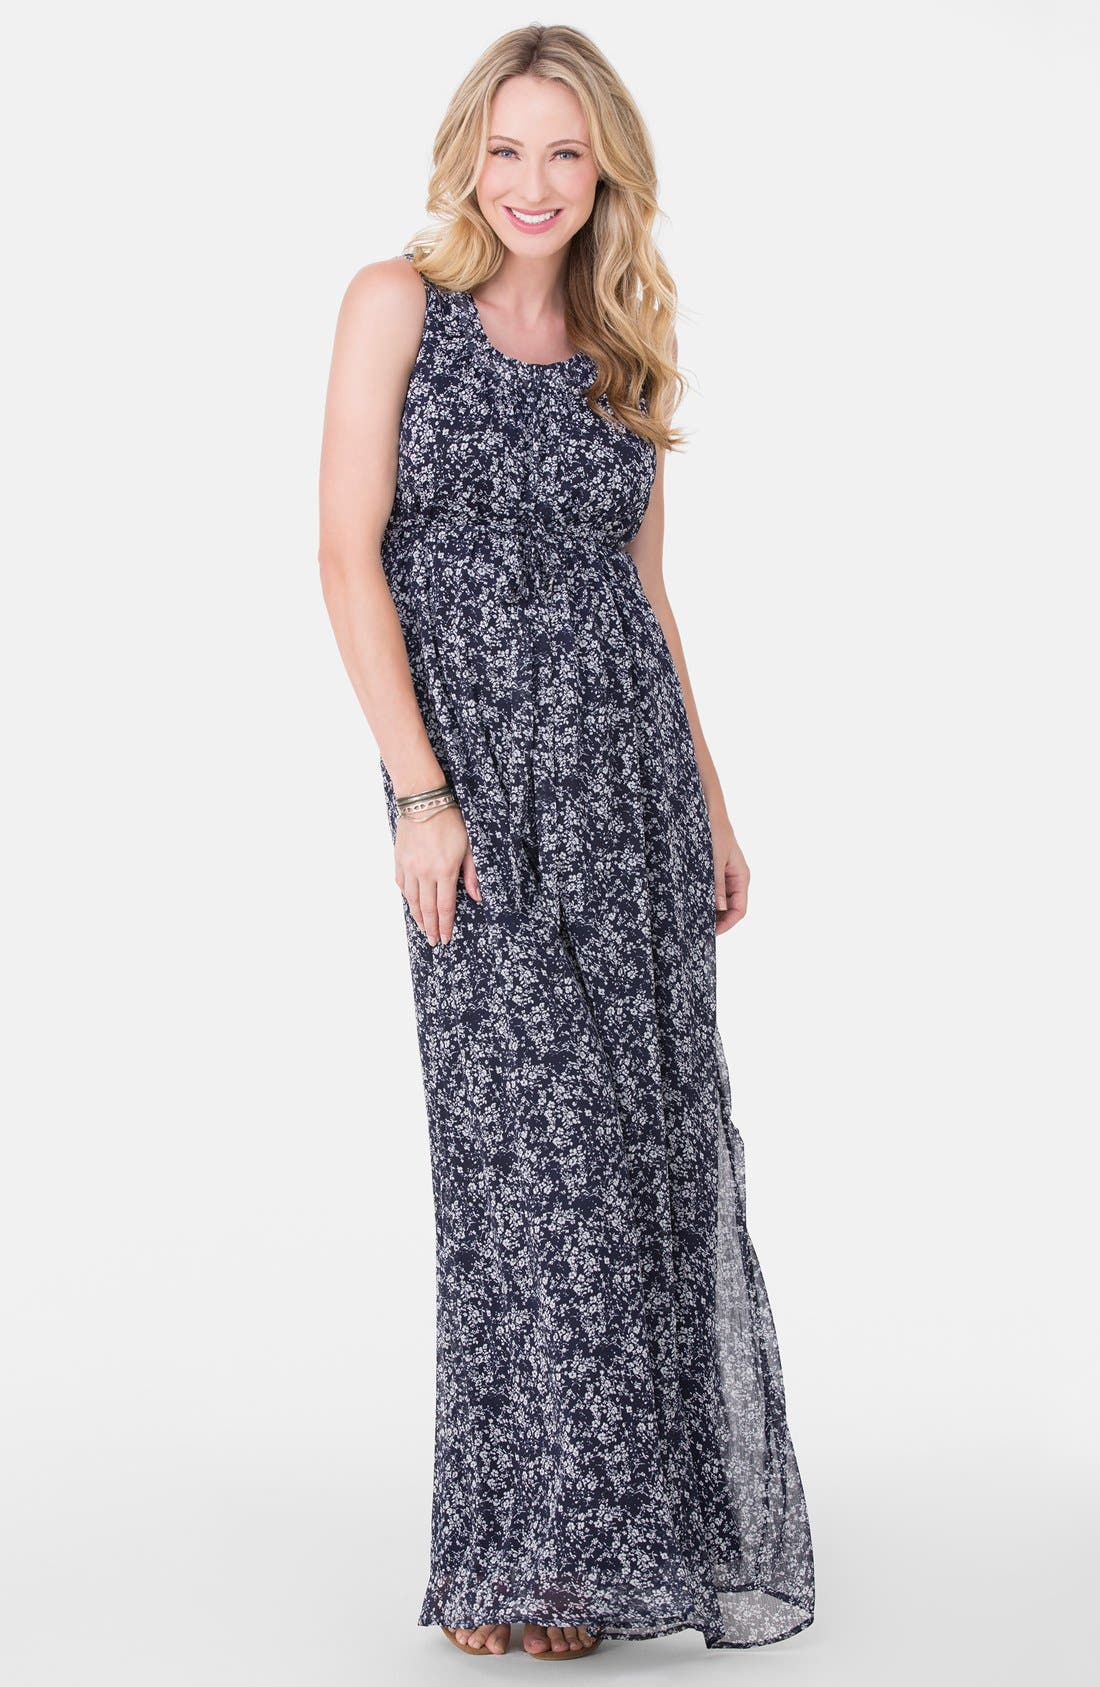 Main Image - Ingrid & Isabel® Floral Print Maternity Maxi Dress